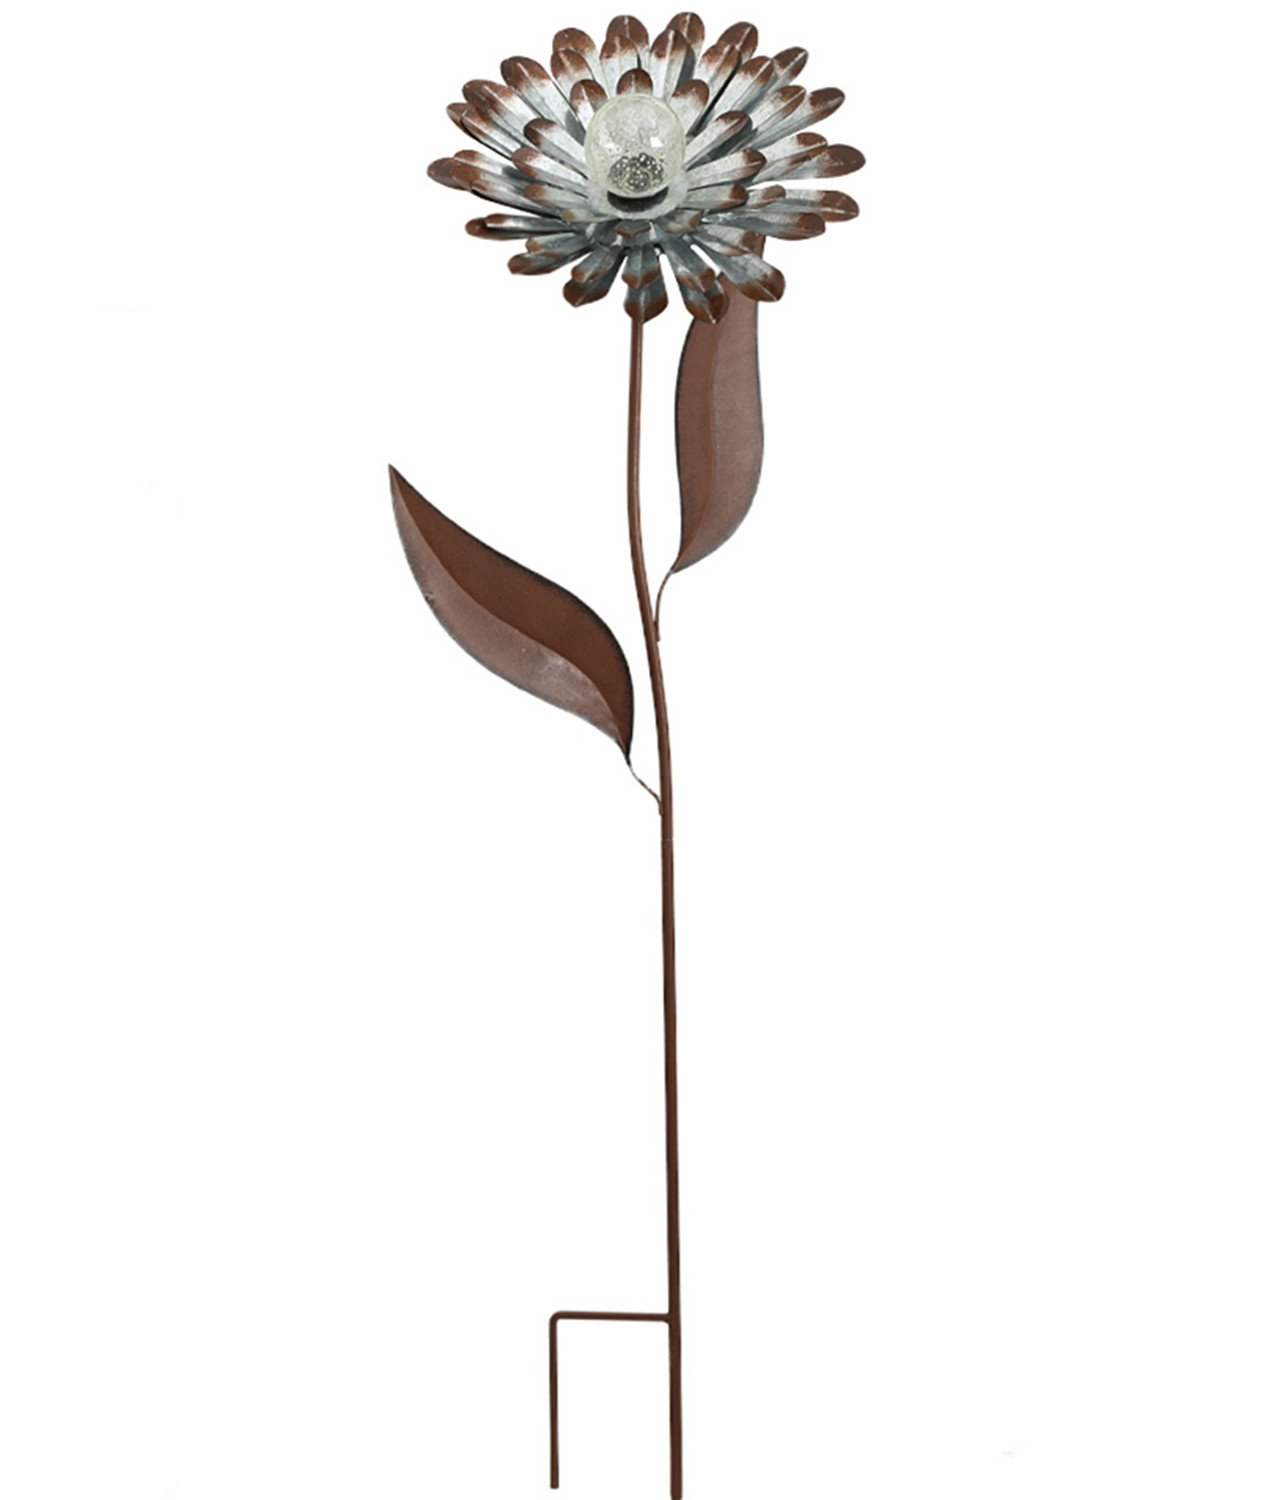 """Galvanized Floral Garden Stake Outdoor Glow in Dark Water Proof Metal Stick Art Ornament Decor for Lawn Yard Patio by CEDAR HOME, 10.5""""W x 3.25""""D x 34.5""""H, Daisy"""